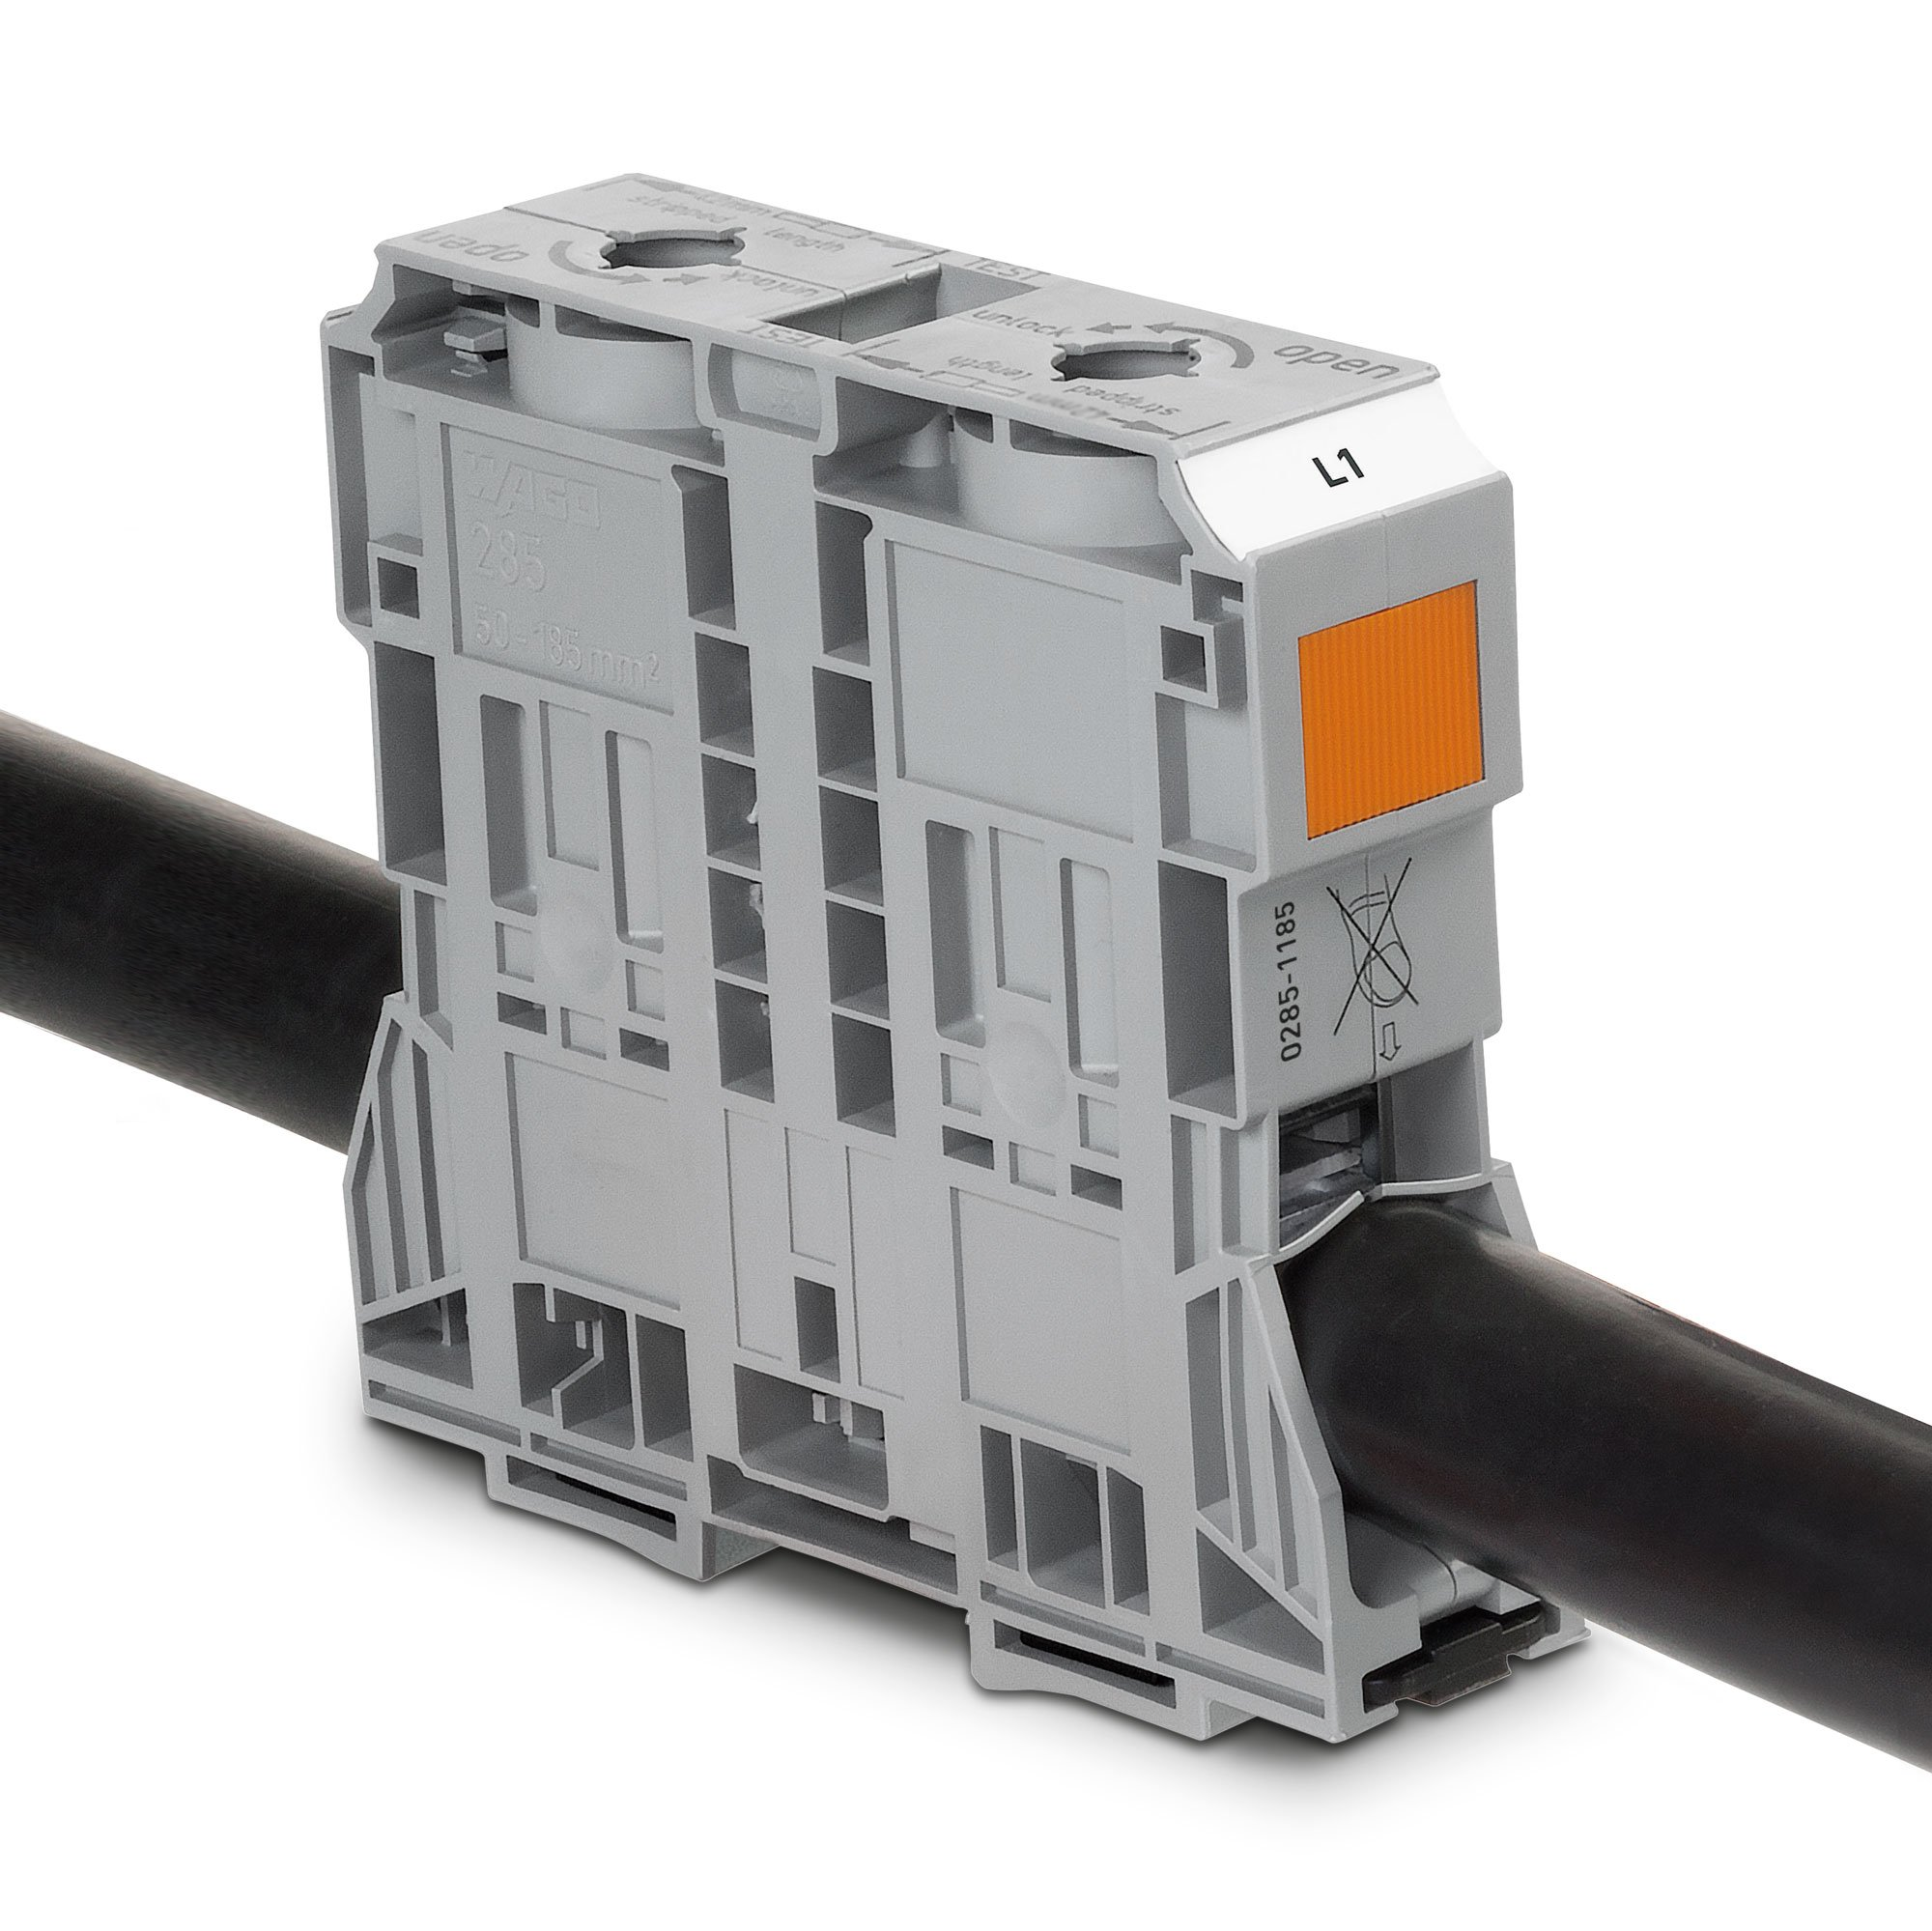 Wago Terminal Blocks Block Wiring Board Busbar High Current Rail Mount With Power Cage Clamp